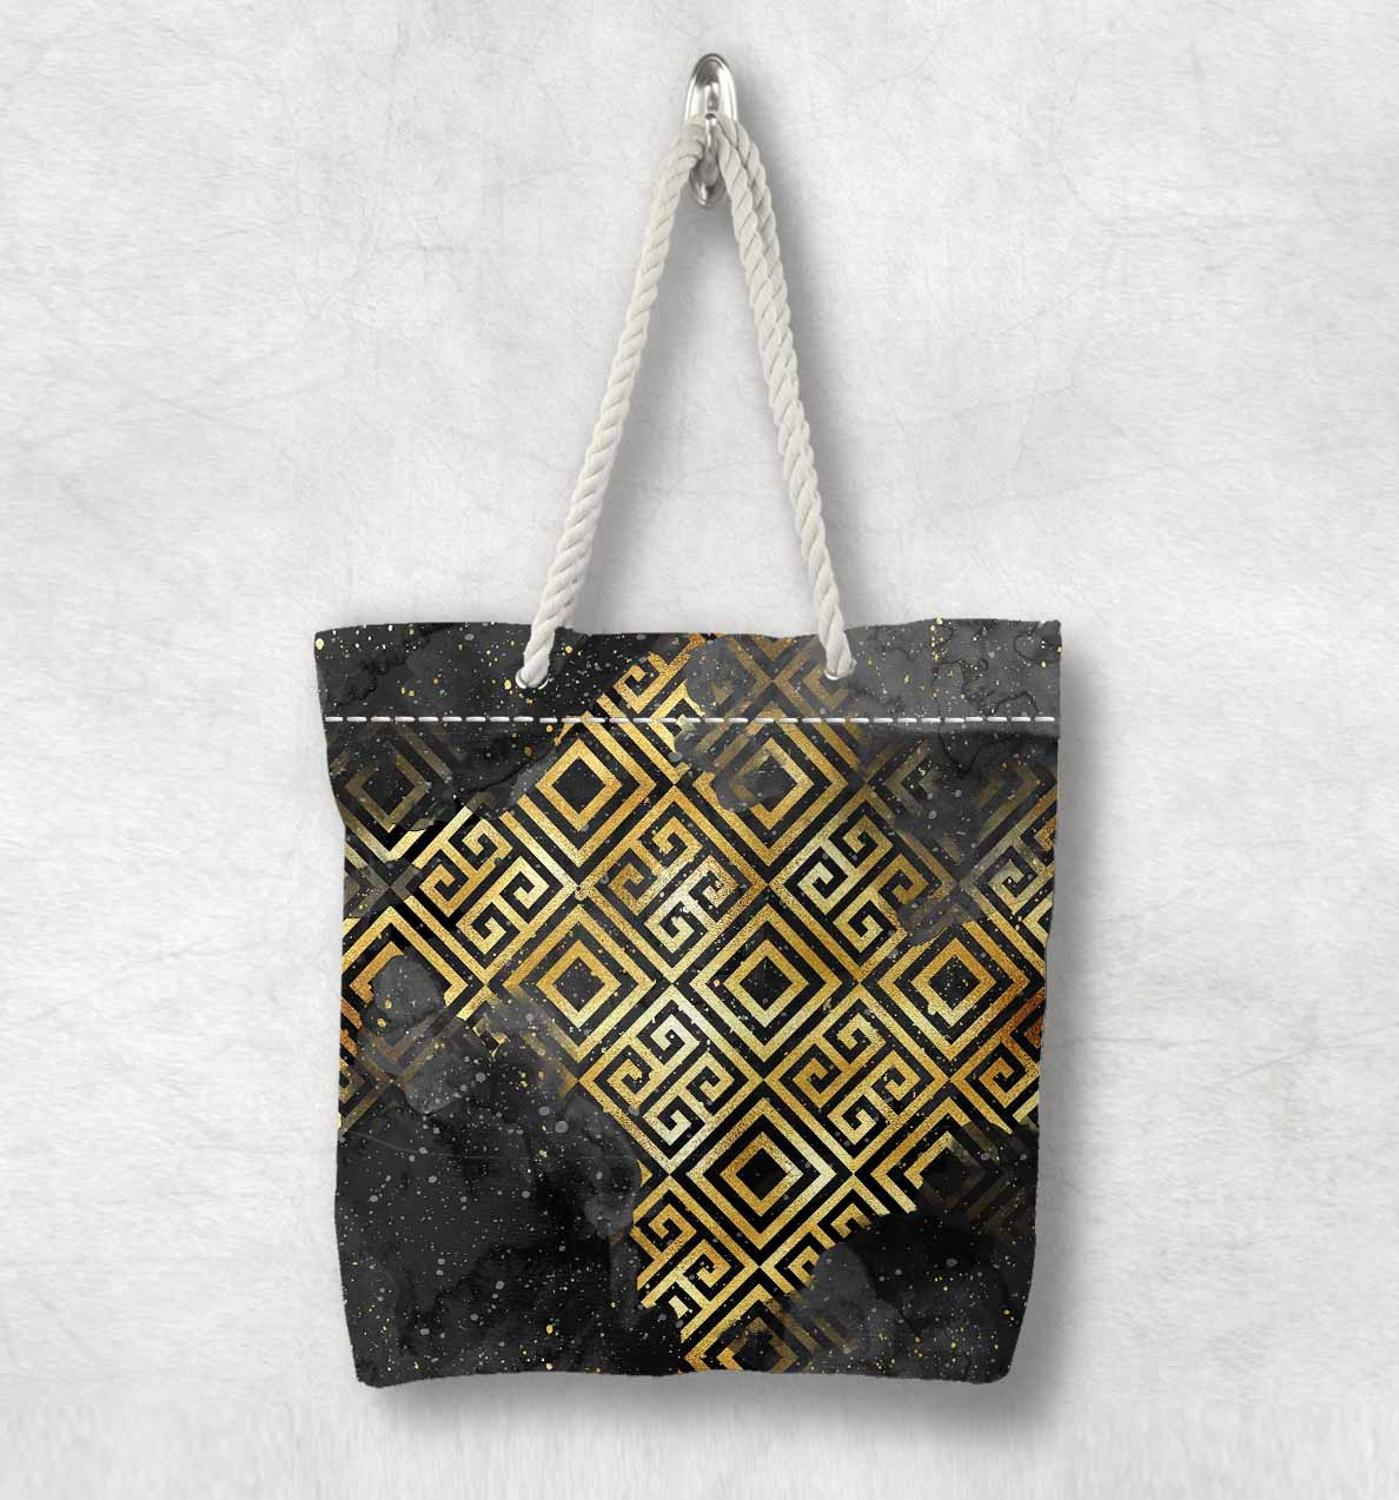 Else Black Golden Yellow Locked Geometric New Fashion White Rope Handle Canvas Bag Cotton Canvas Zippered Tote Bag Shoulder Bag